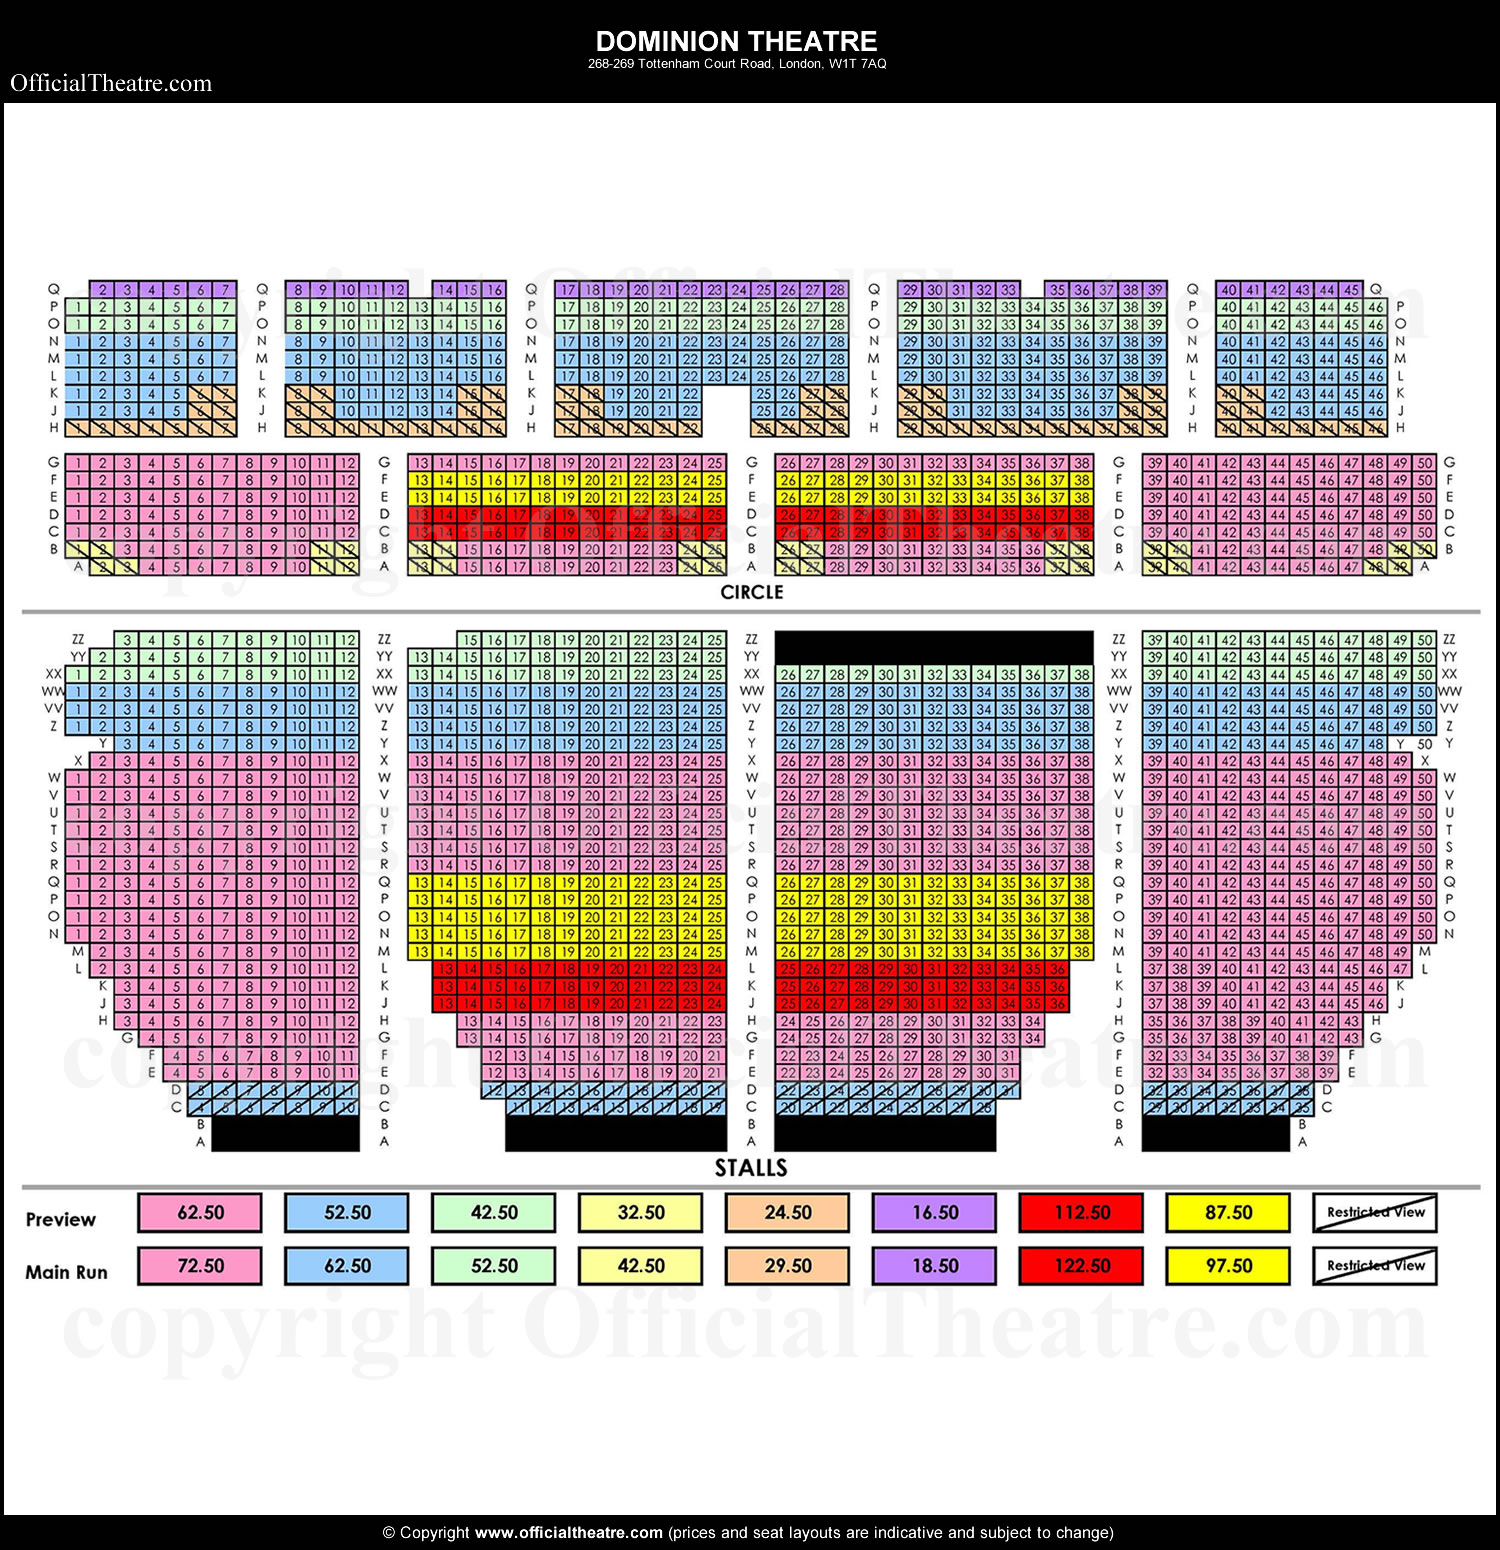 Dominion Theatre London Seat Map And Prices For Bat Out Of